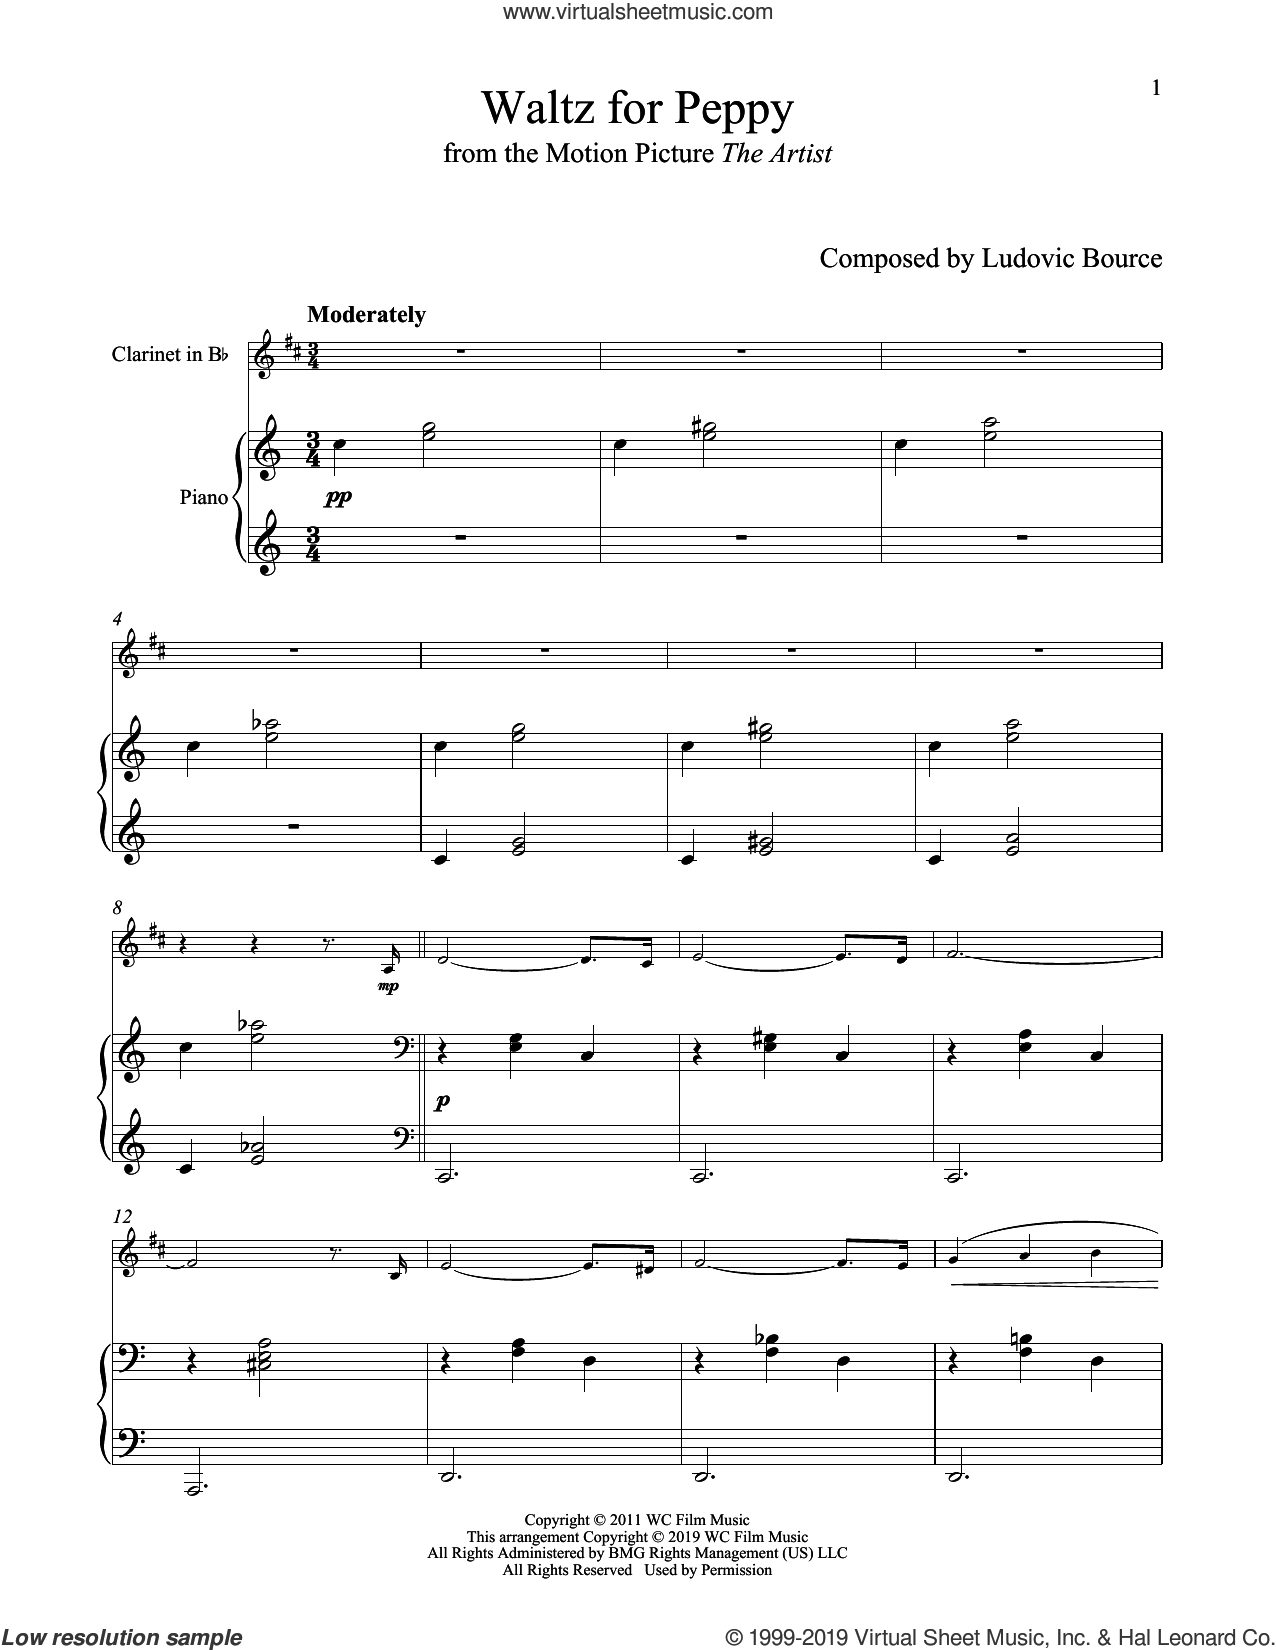 Waltz For Peppy (from The Artist) sheet music for clarinet and piano by Ludovic Bource, intermediate skill level